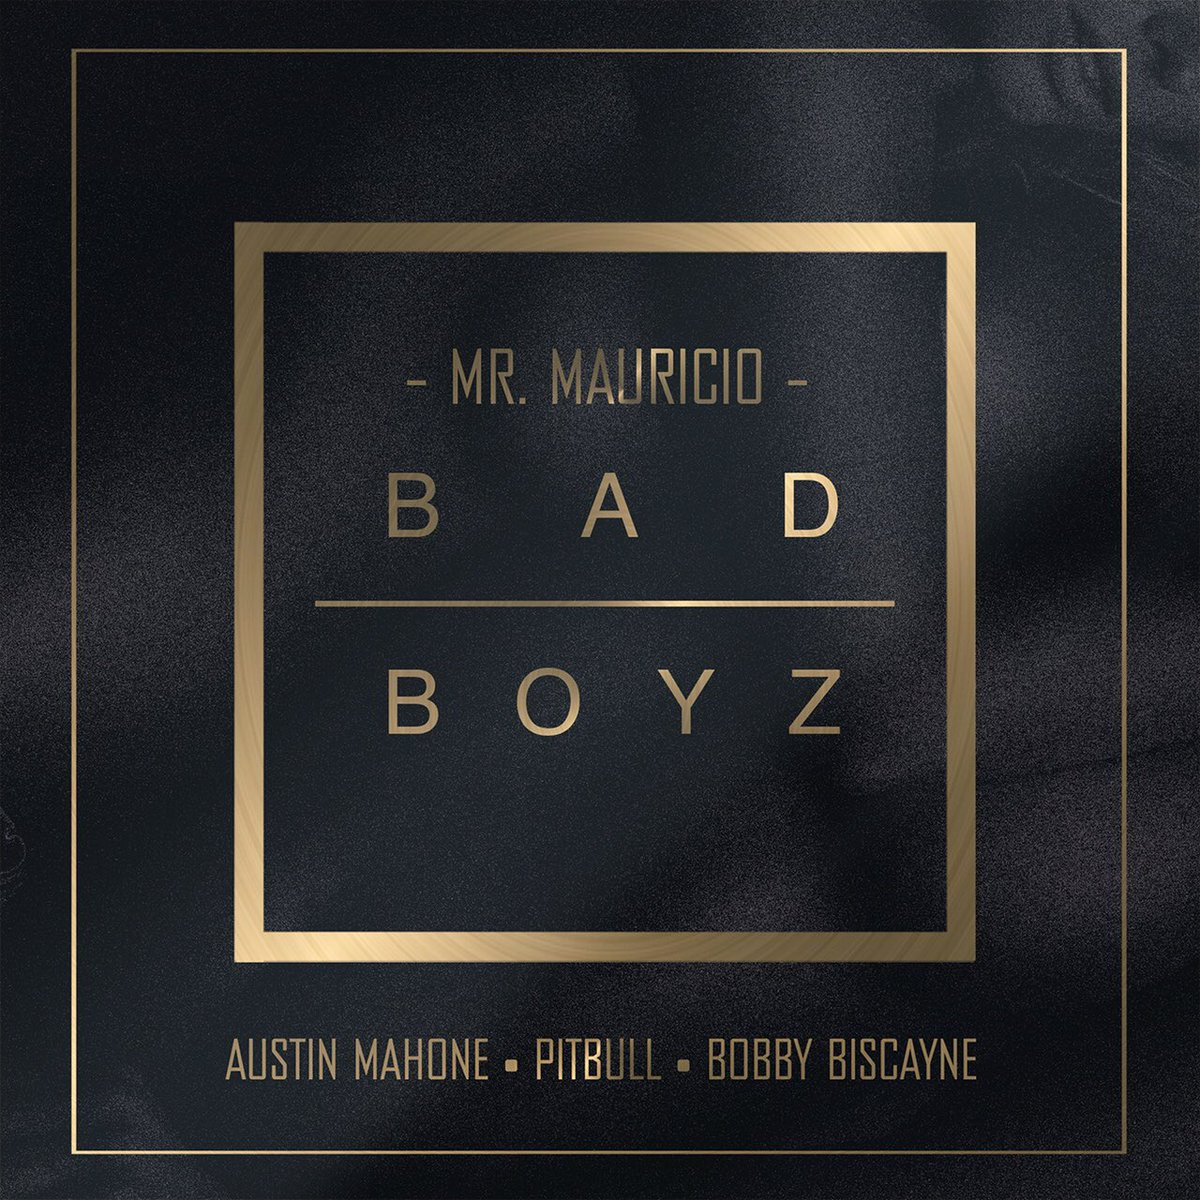 What the world been waiting for ... @pitbull @AustinMahone @BobbyBiscayne #BadBoyz https://t.co/Rf3QuGYR8c